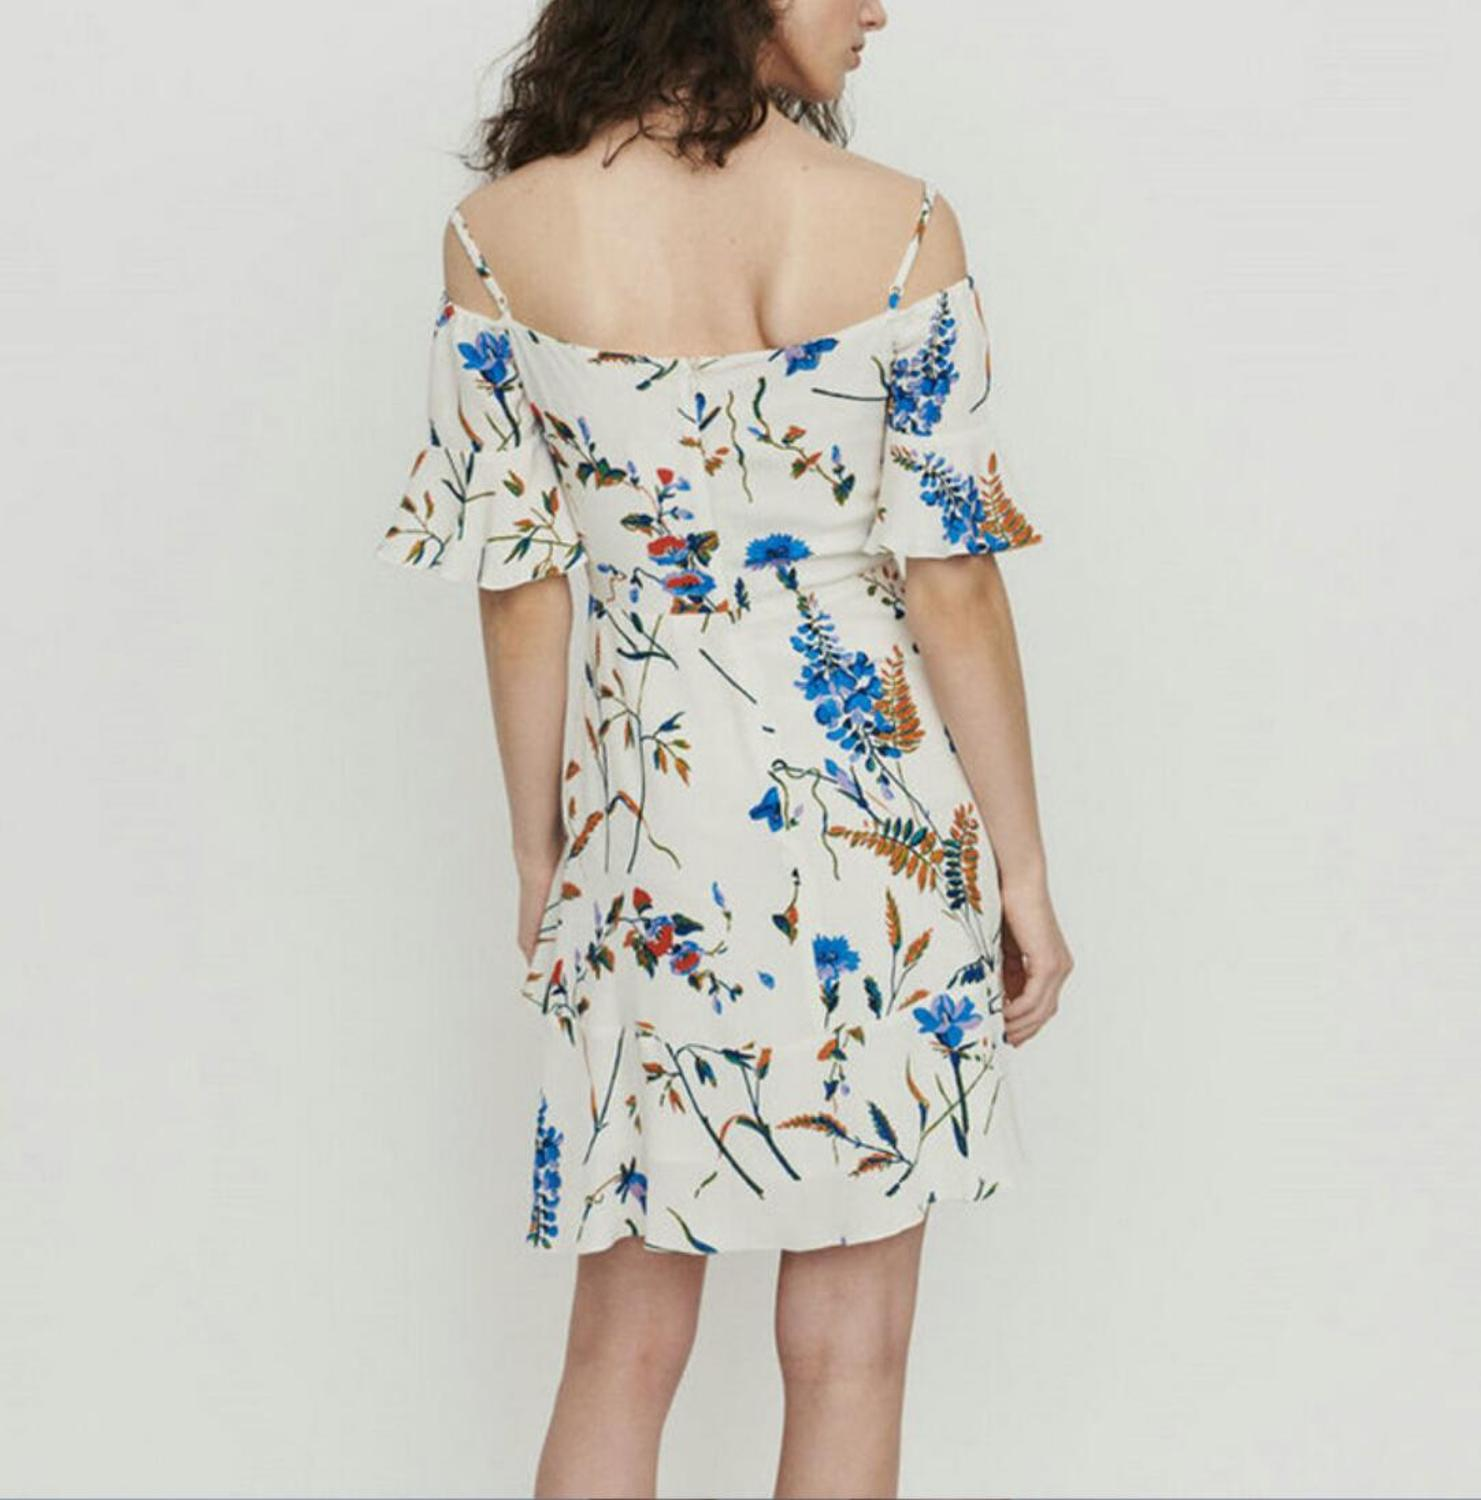 Women Dress 2019 Spring and Summer Slim Floral Sling Strapless High Rise Ruffle Mini Dress-in Dresses from Women's Clothing    2